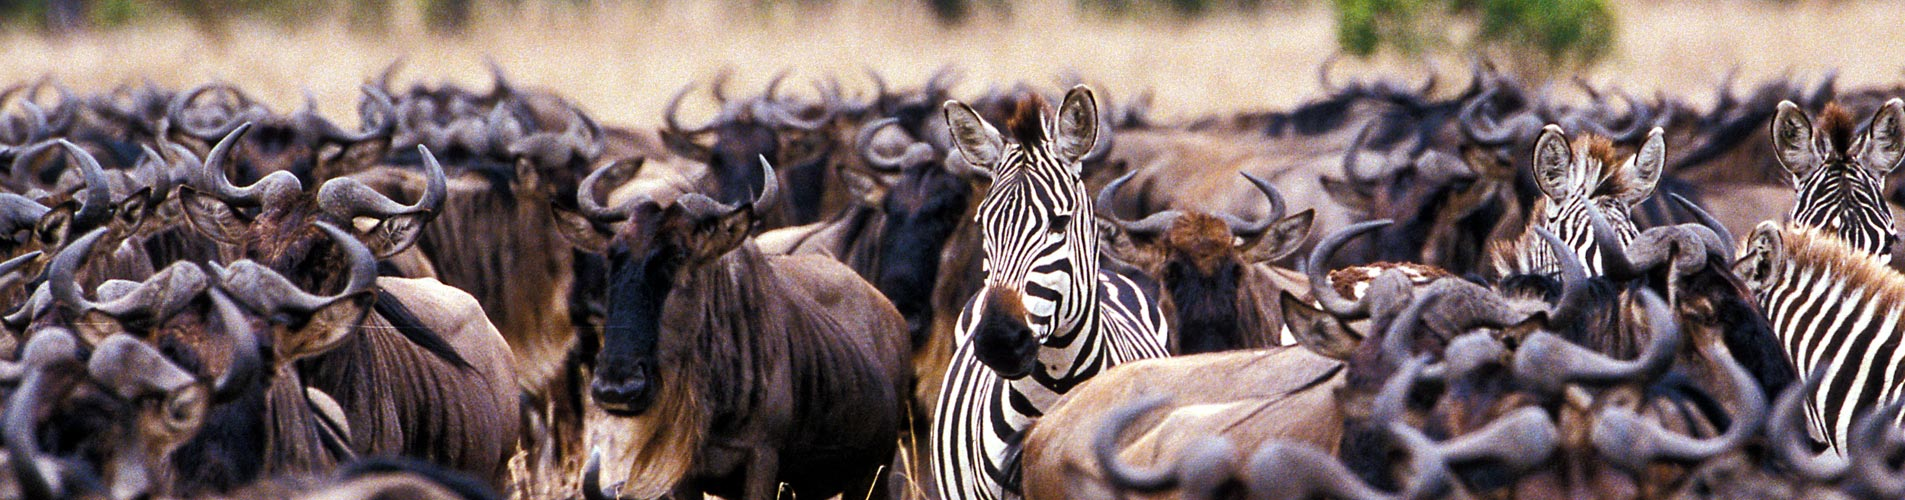 Zebra In Wildebeest Herd in Kenya